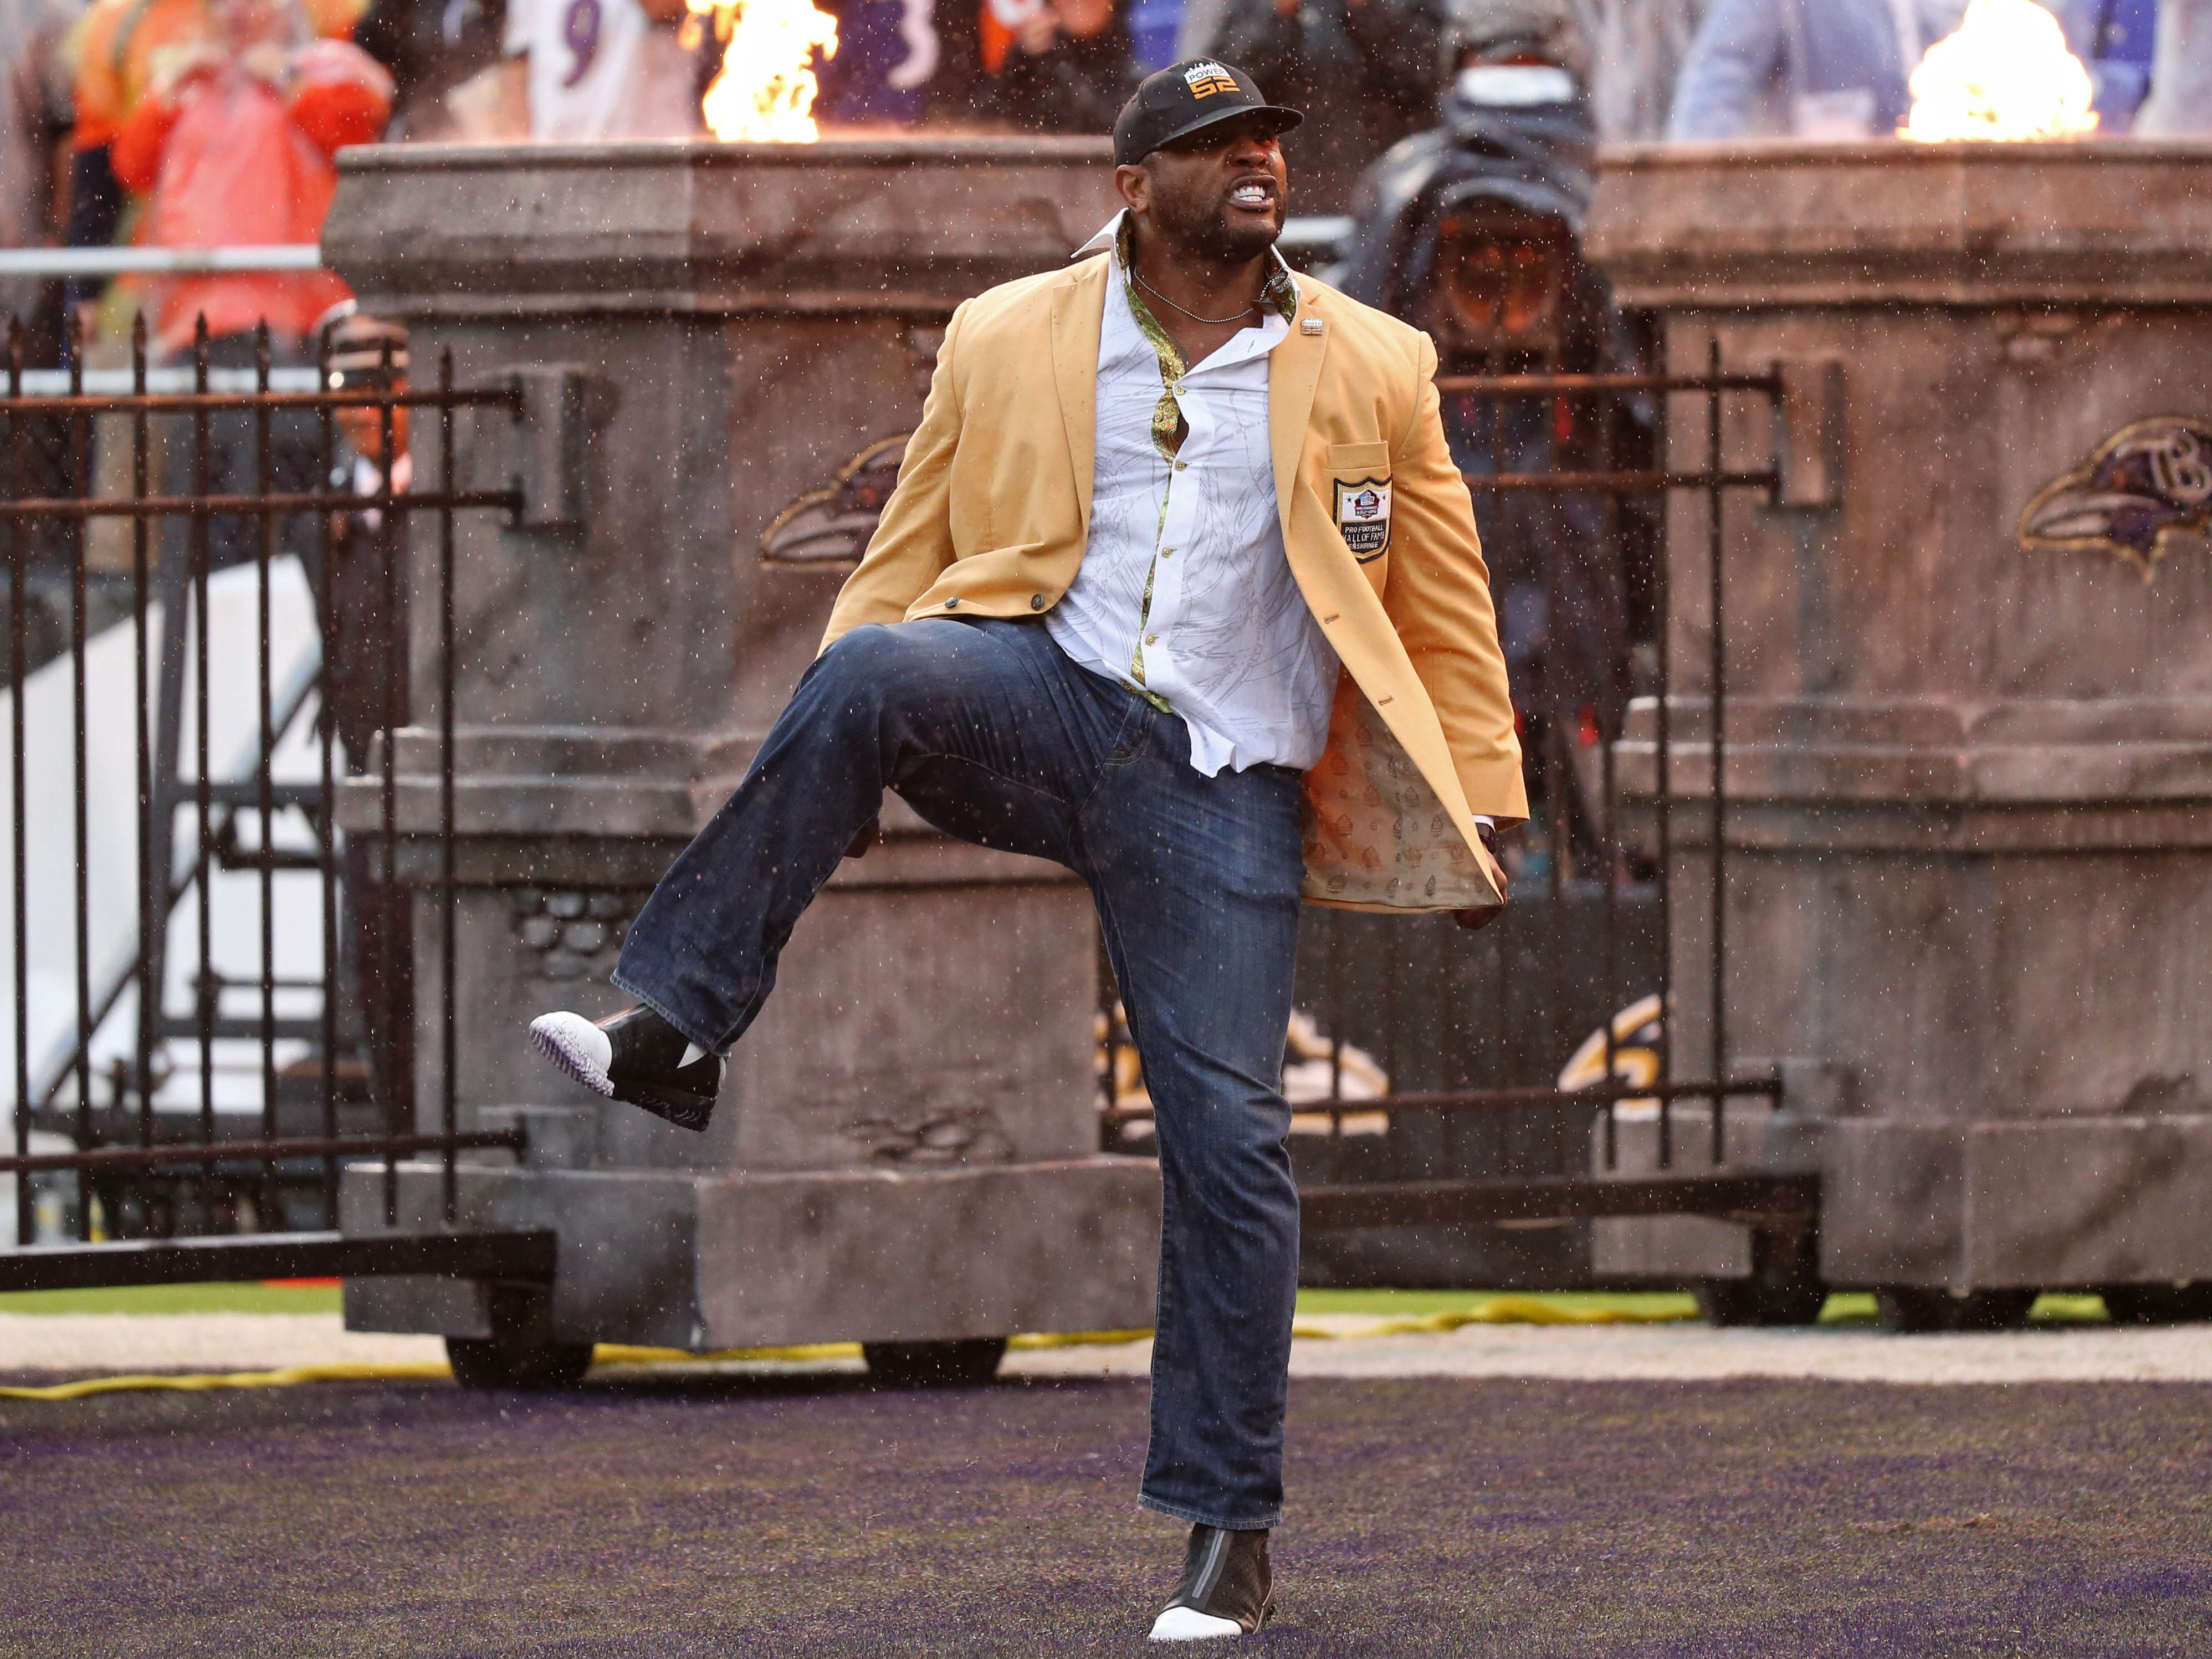 Baltimore Ravens hall of fame linebacker Ray Lewis performs his pregame dance prior to a game against the Denver Broncos at M&T Bank Stadium.